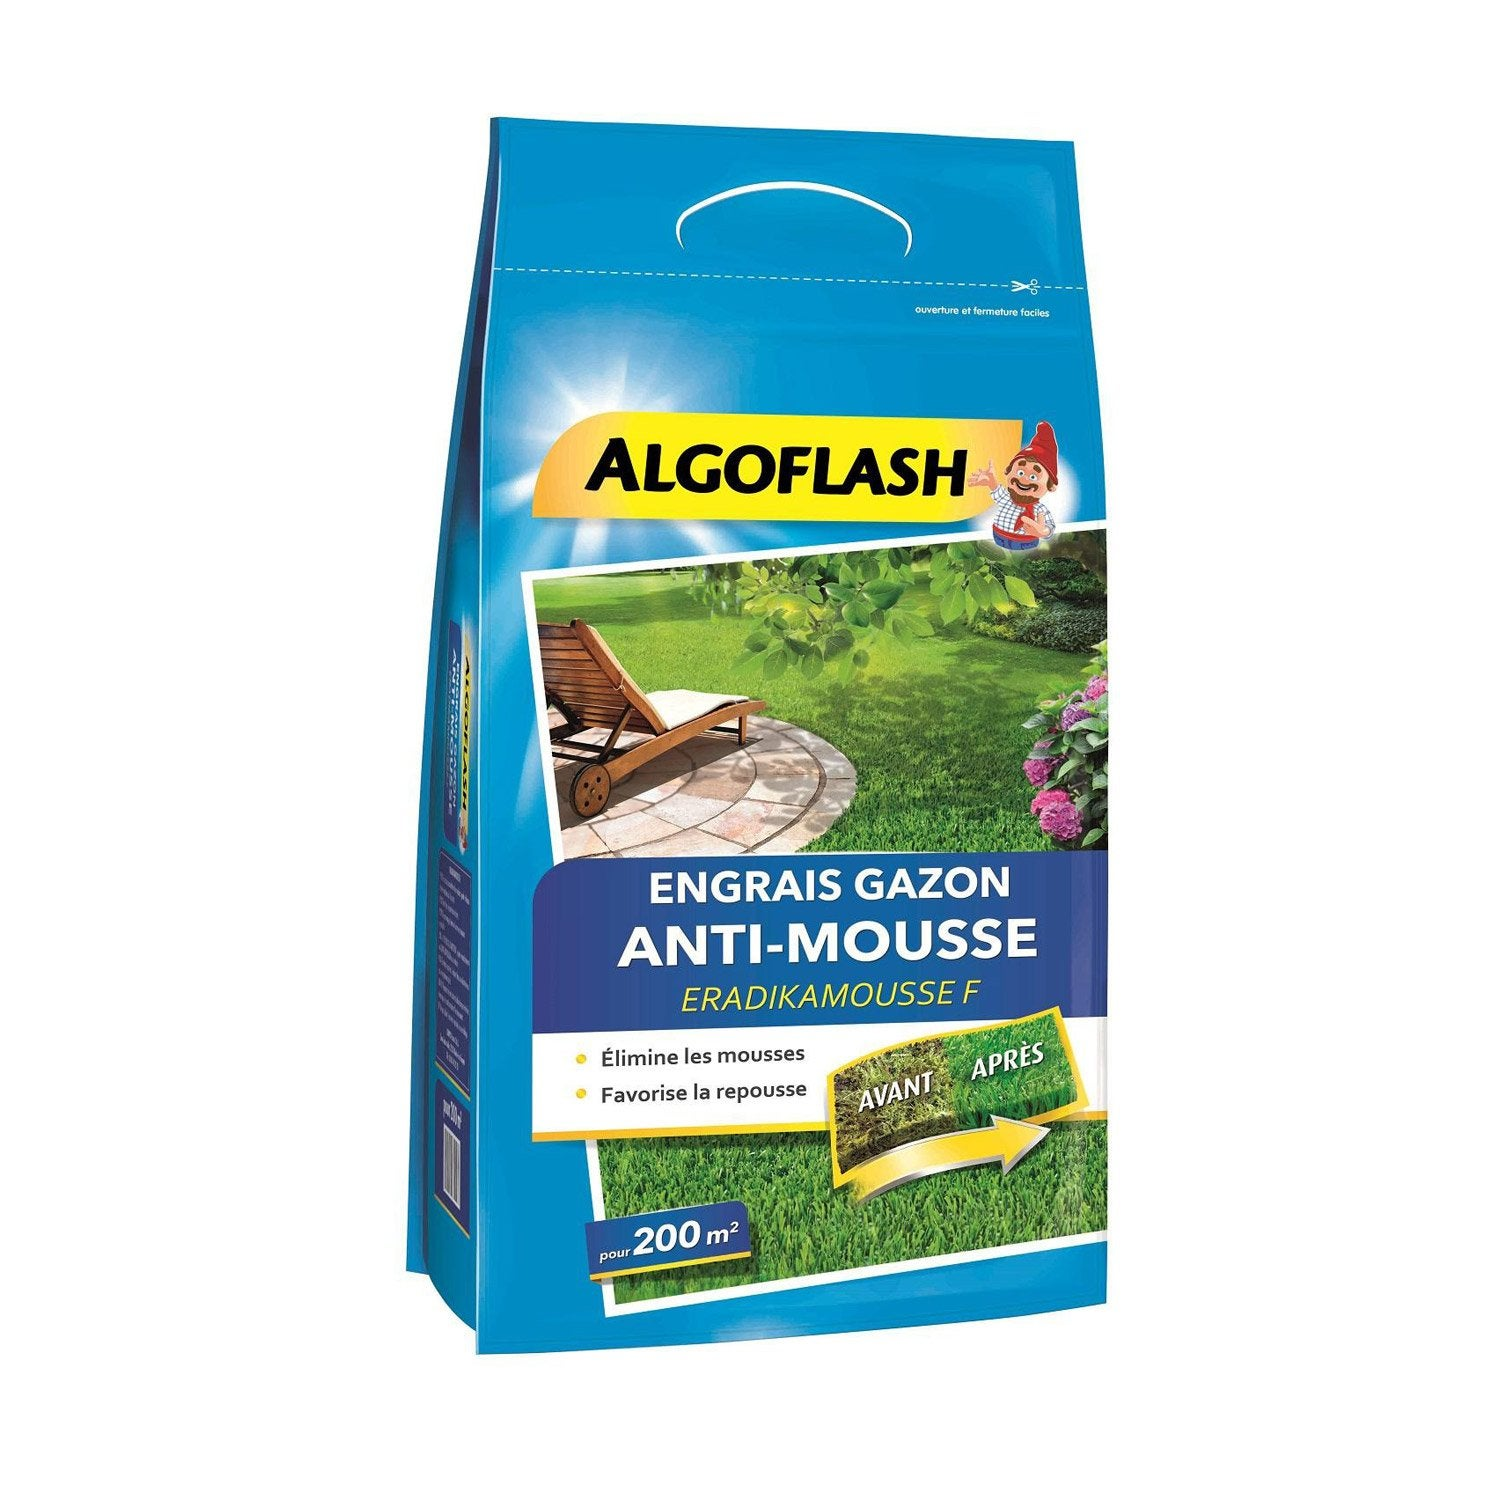 Engrais gazon antimousse algoflash 6kg 200 m leroy merlin - Produit anti mousse gazon ...